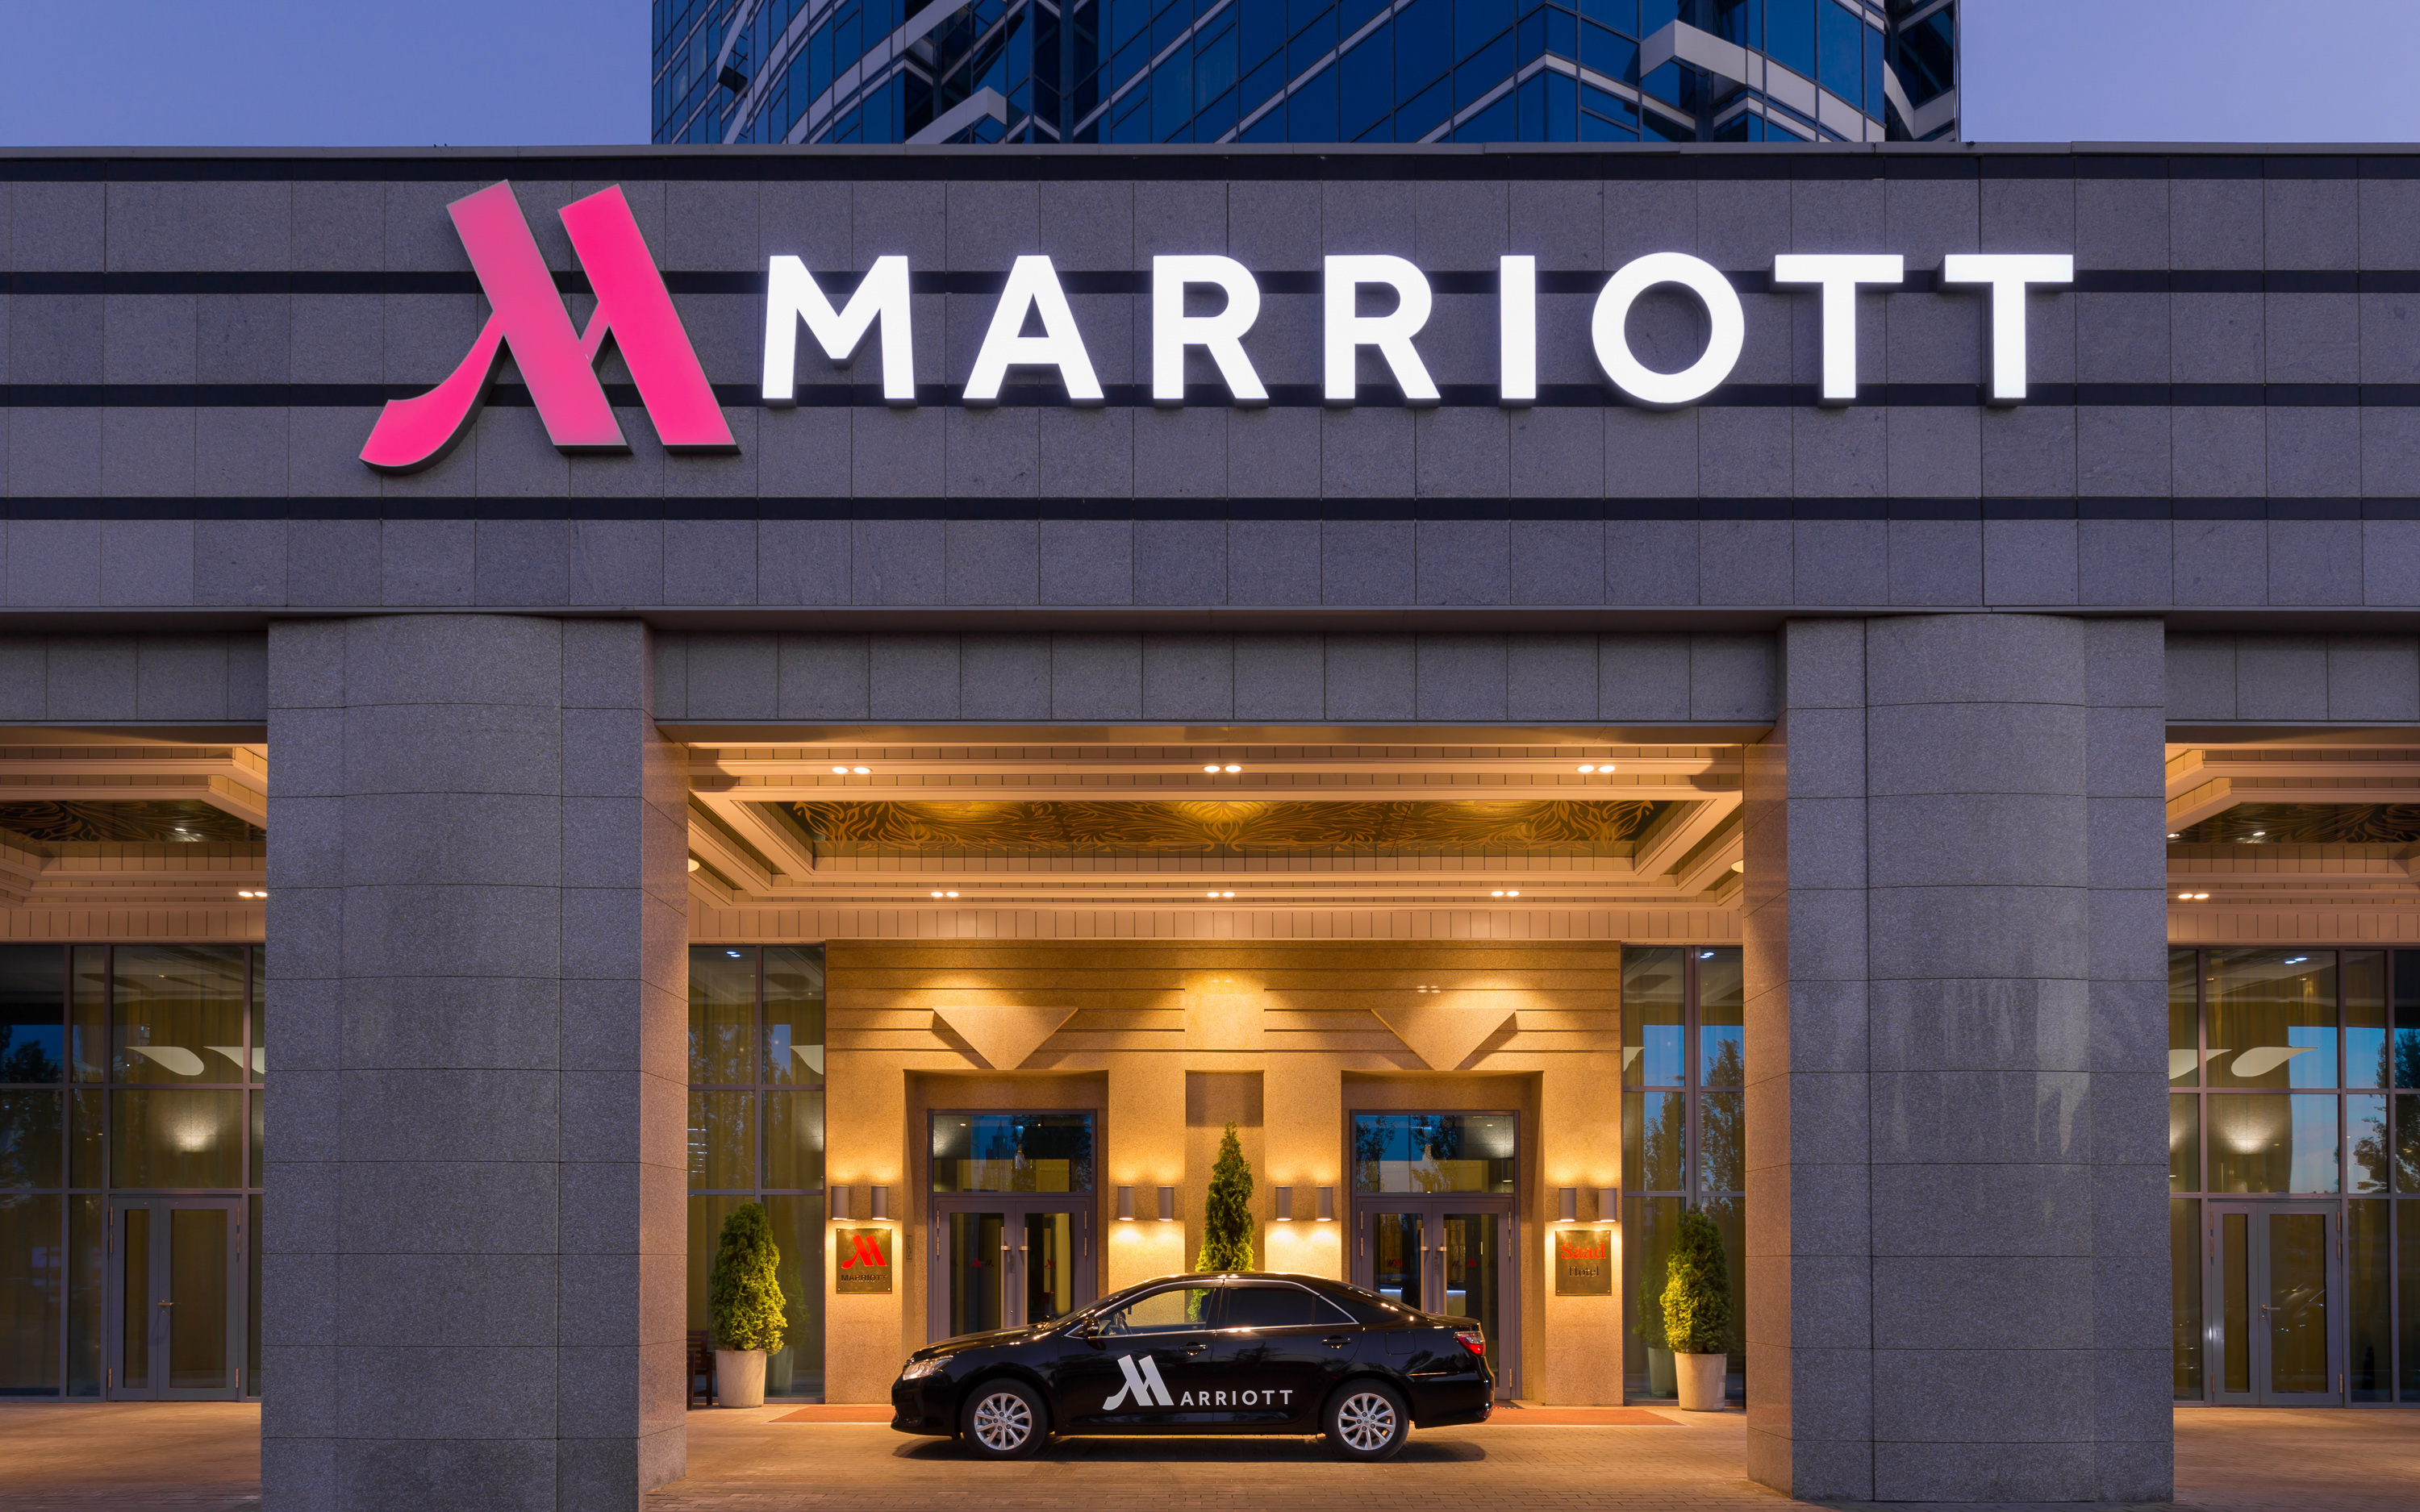 Marriott, Astana